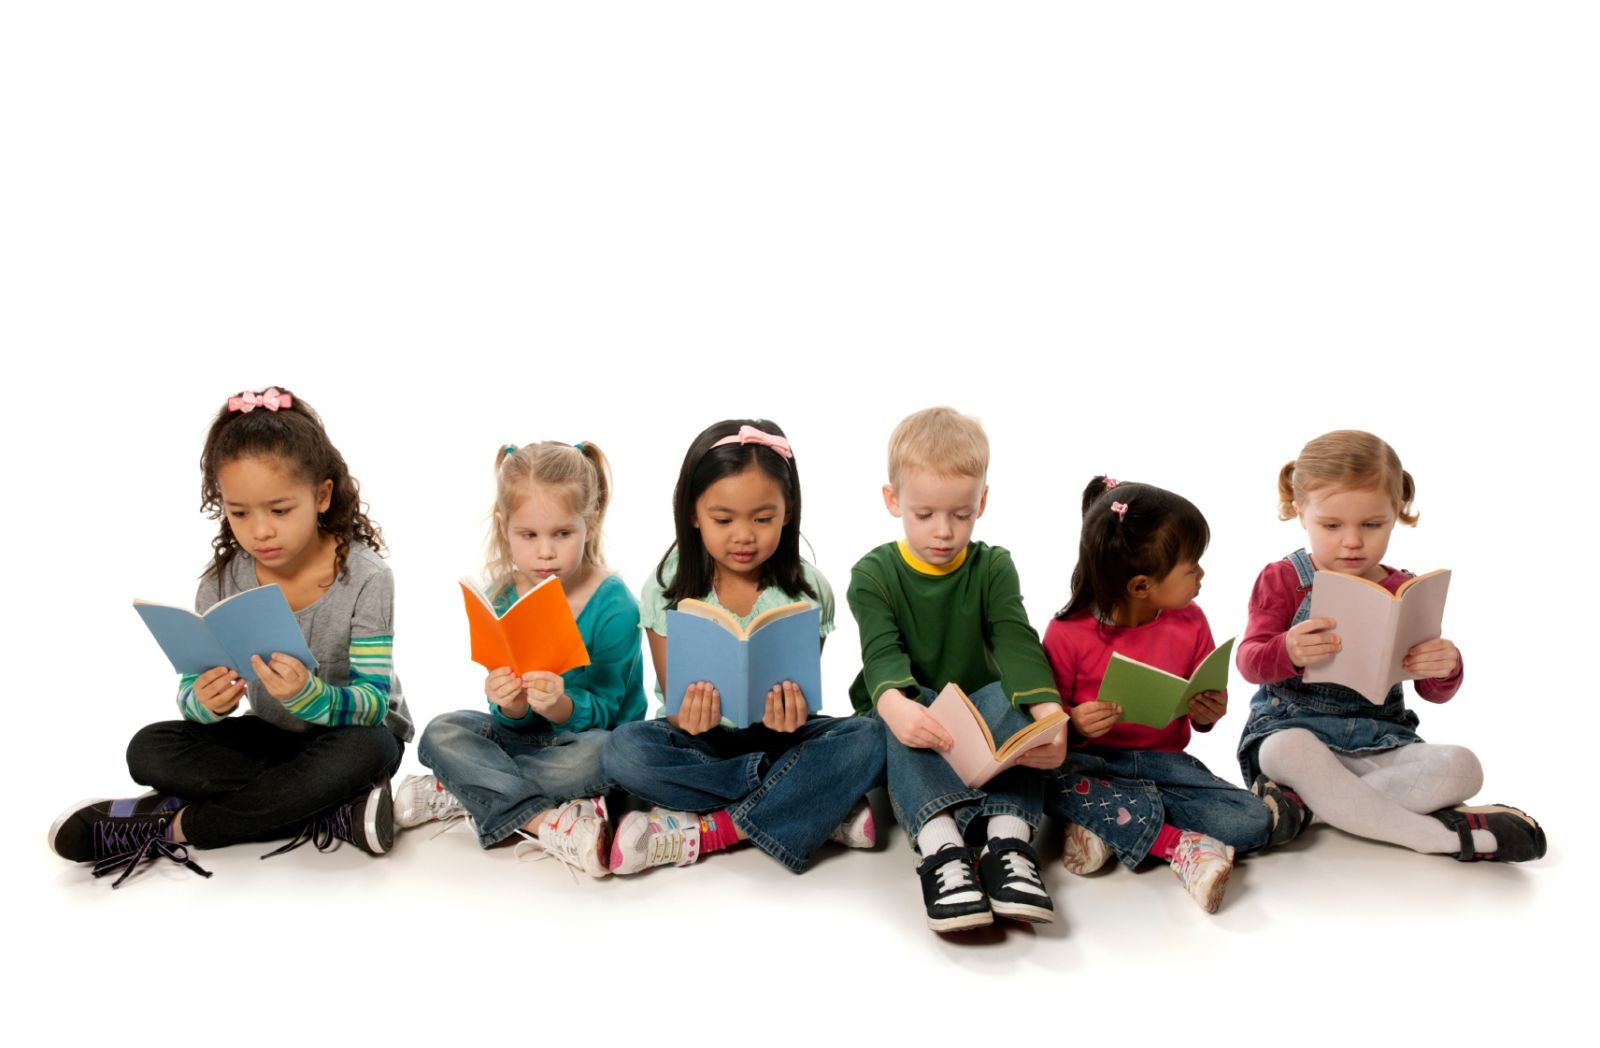 Preschool education promotes early childhood literacy ...